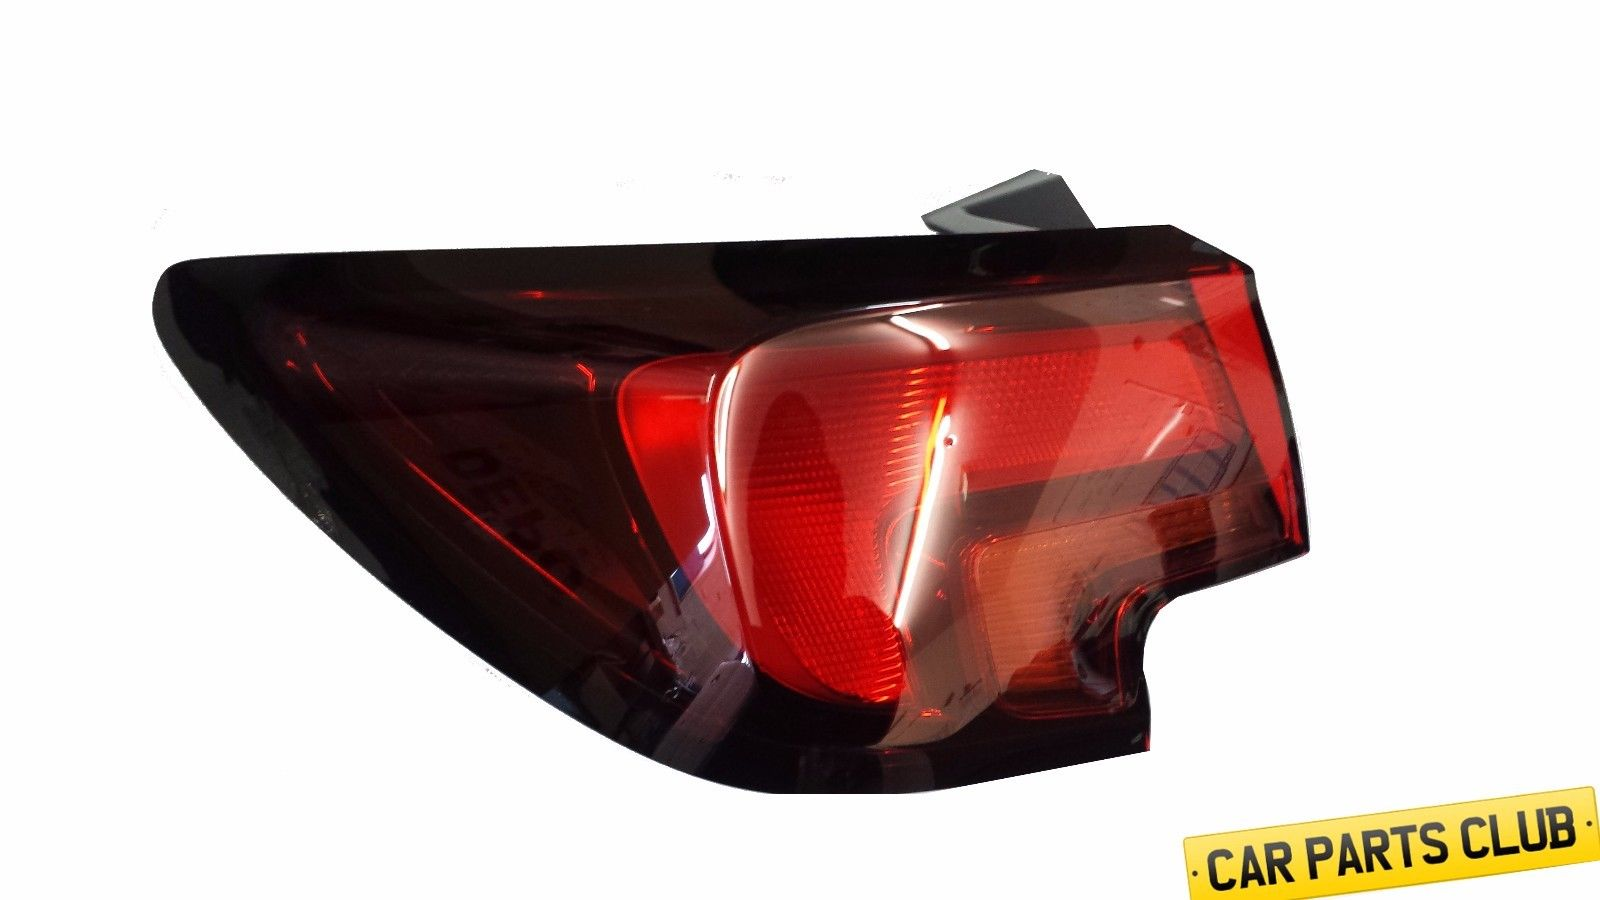 Vauxhall Astra K Hatchback Passenger Side Outer Rear Light New OE Part 39015943